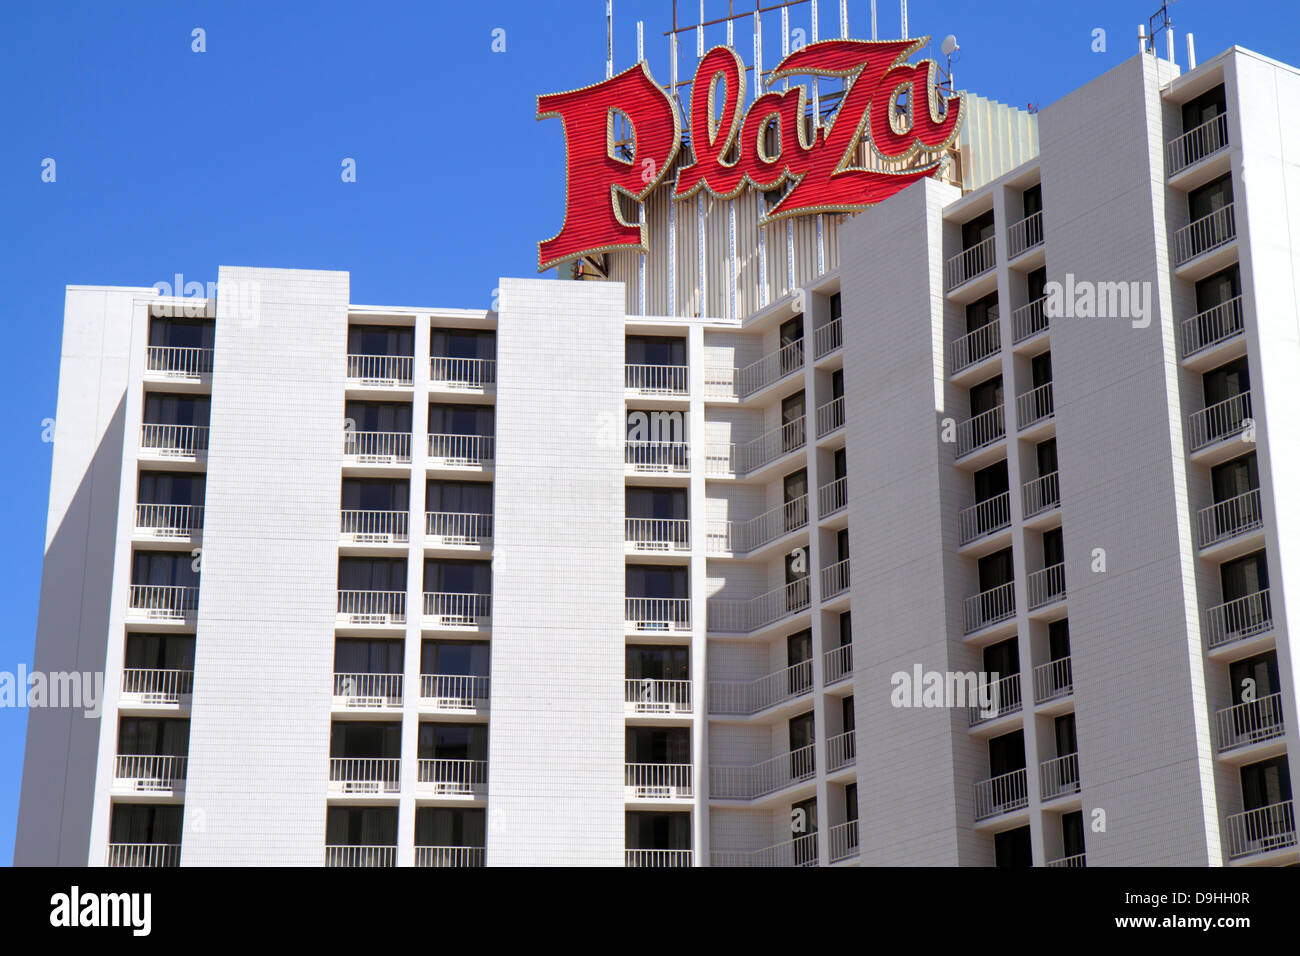 Nevada Las Vegas Downtown Plaza Hotel   Casino hotel neon sign balconies    Stock Image. Plaza Hotel   Casino Stock Photos   Plaza Hotel   Casino Stock